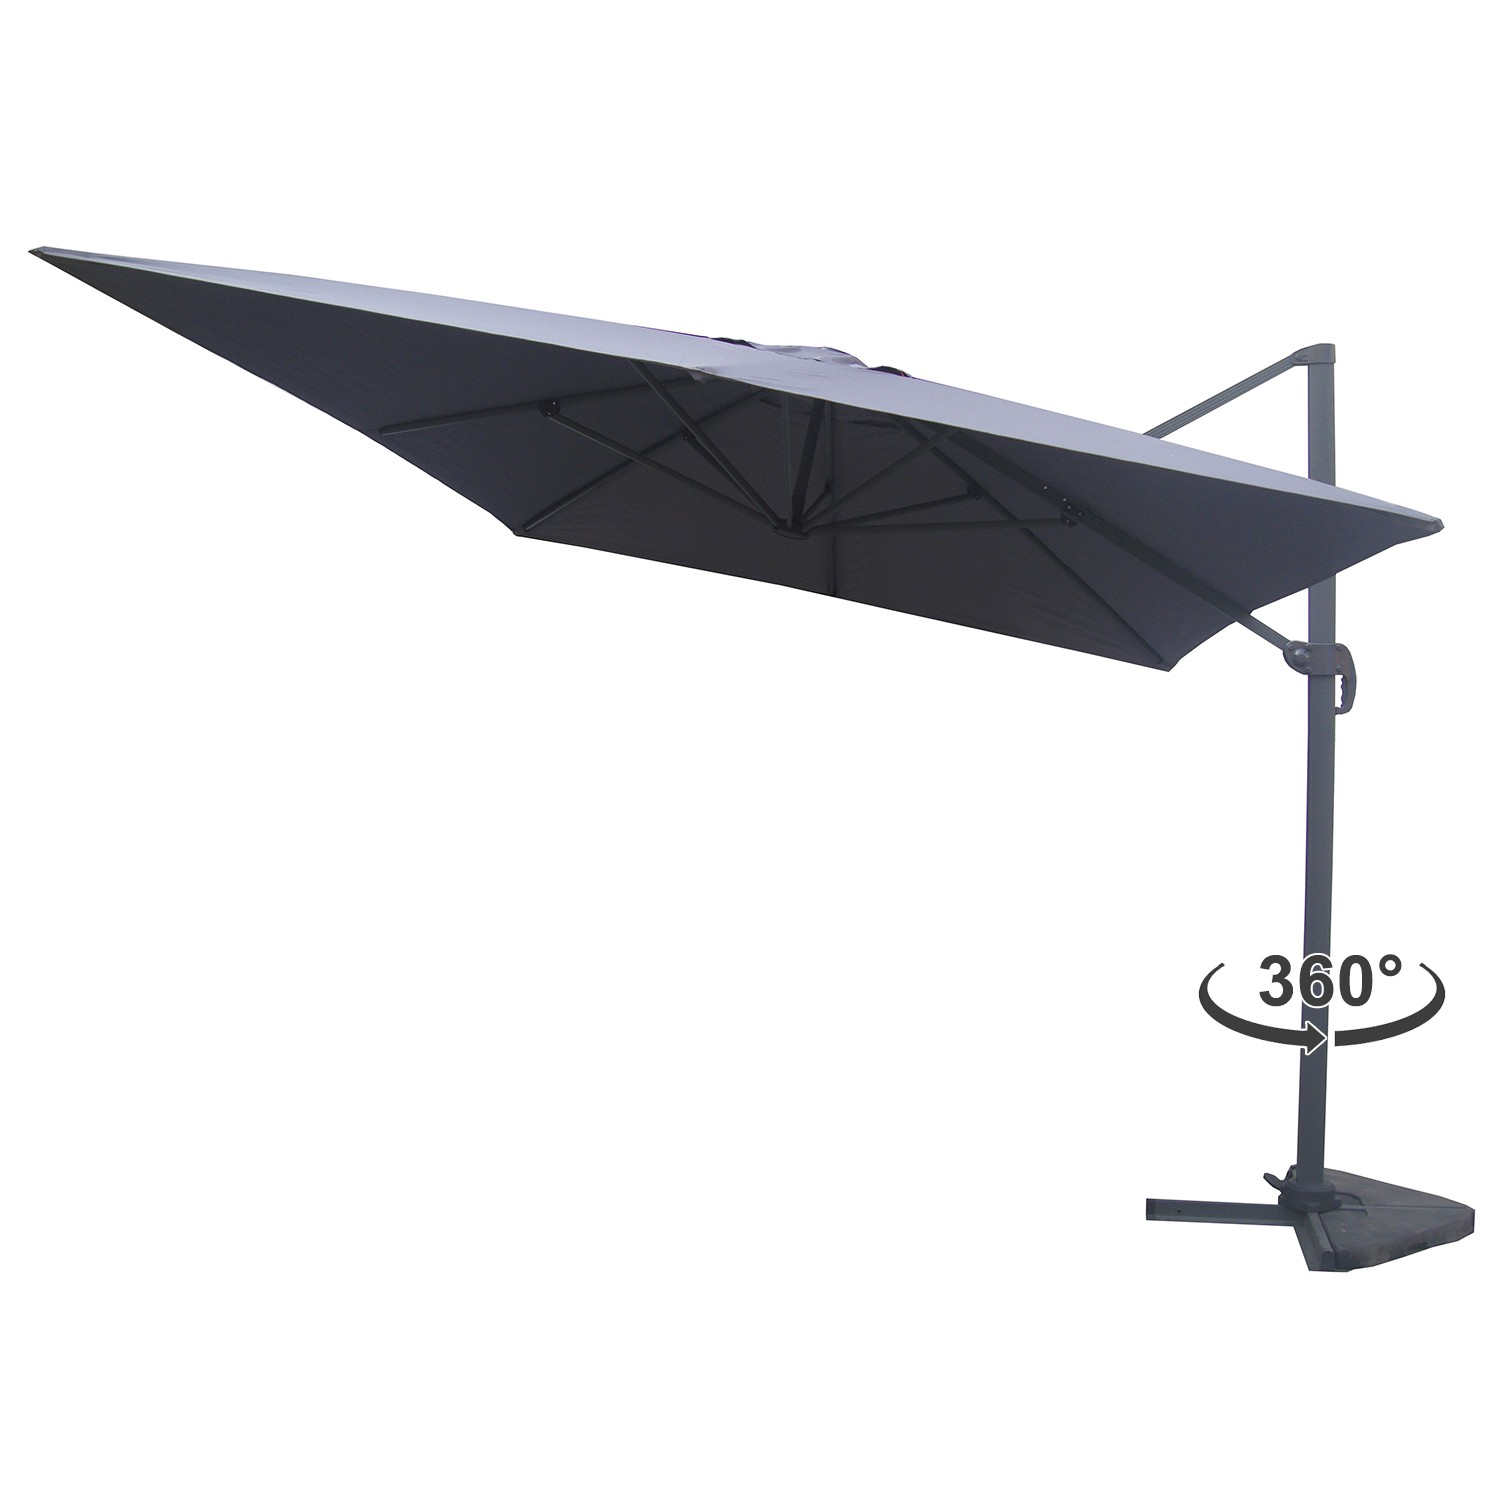 strand gris parasol d port rectangulaire 3x4m rotatif 360. Black Bedroom Furniture Sets. Home Design Ideas